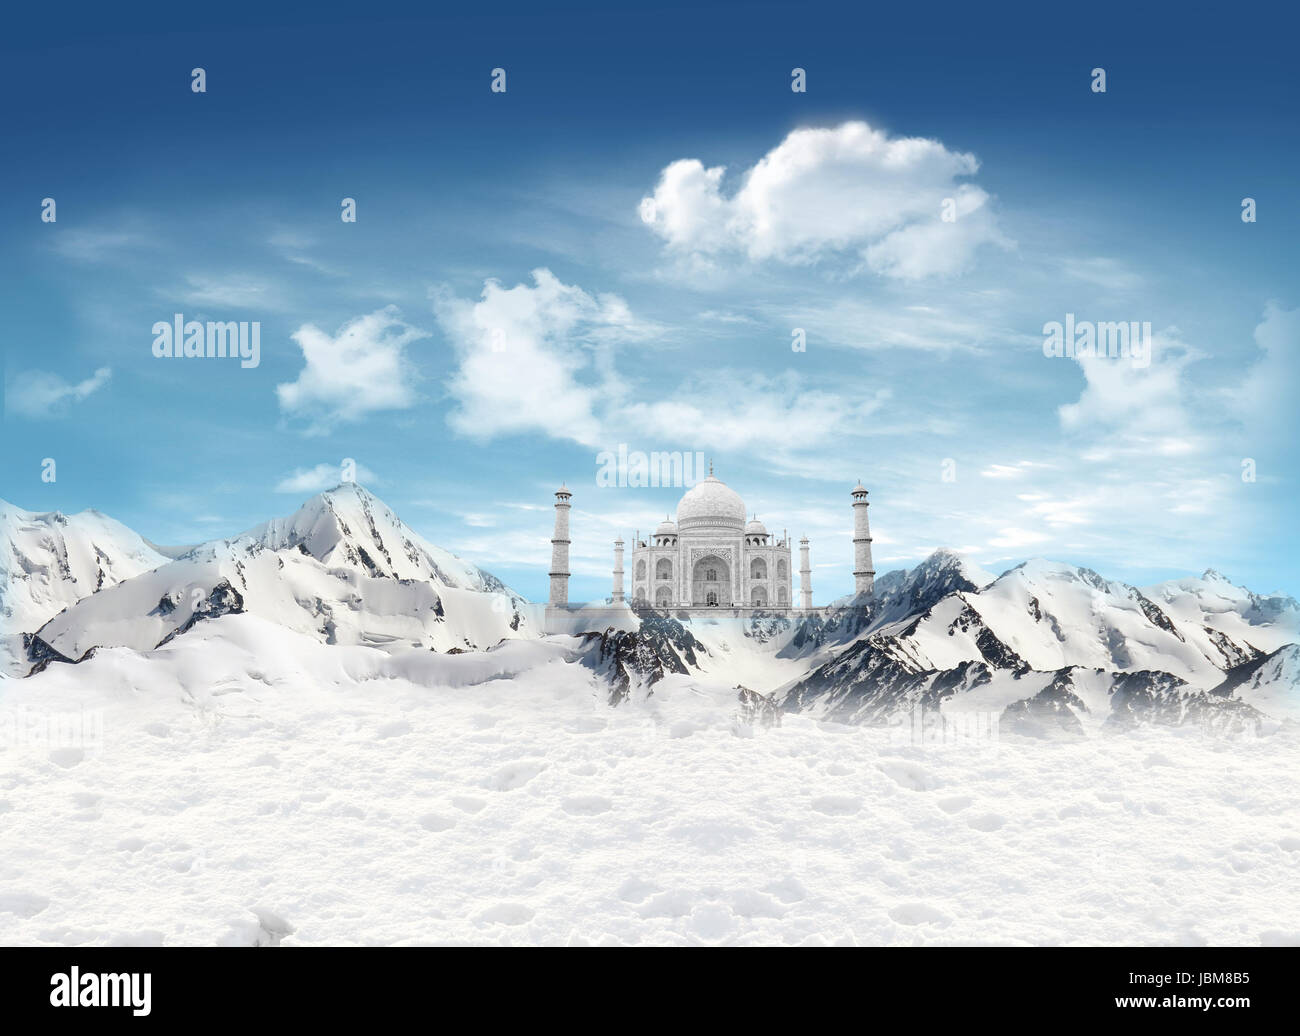 Taji Mahal among the mountains with snow and blue sky with clouds in the background - Stock Image